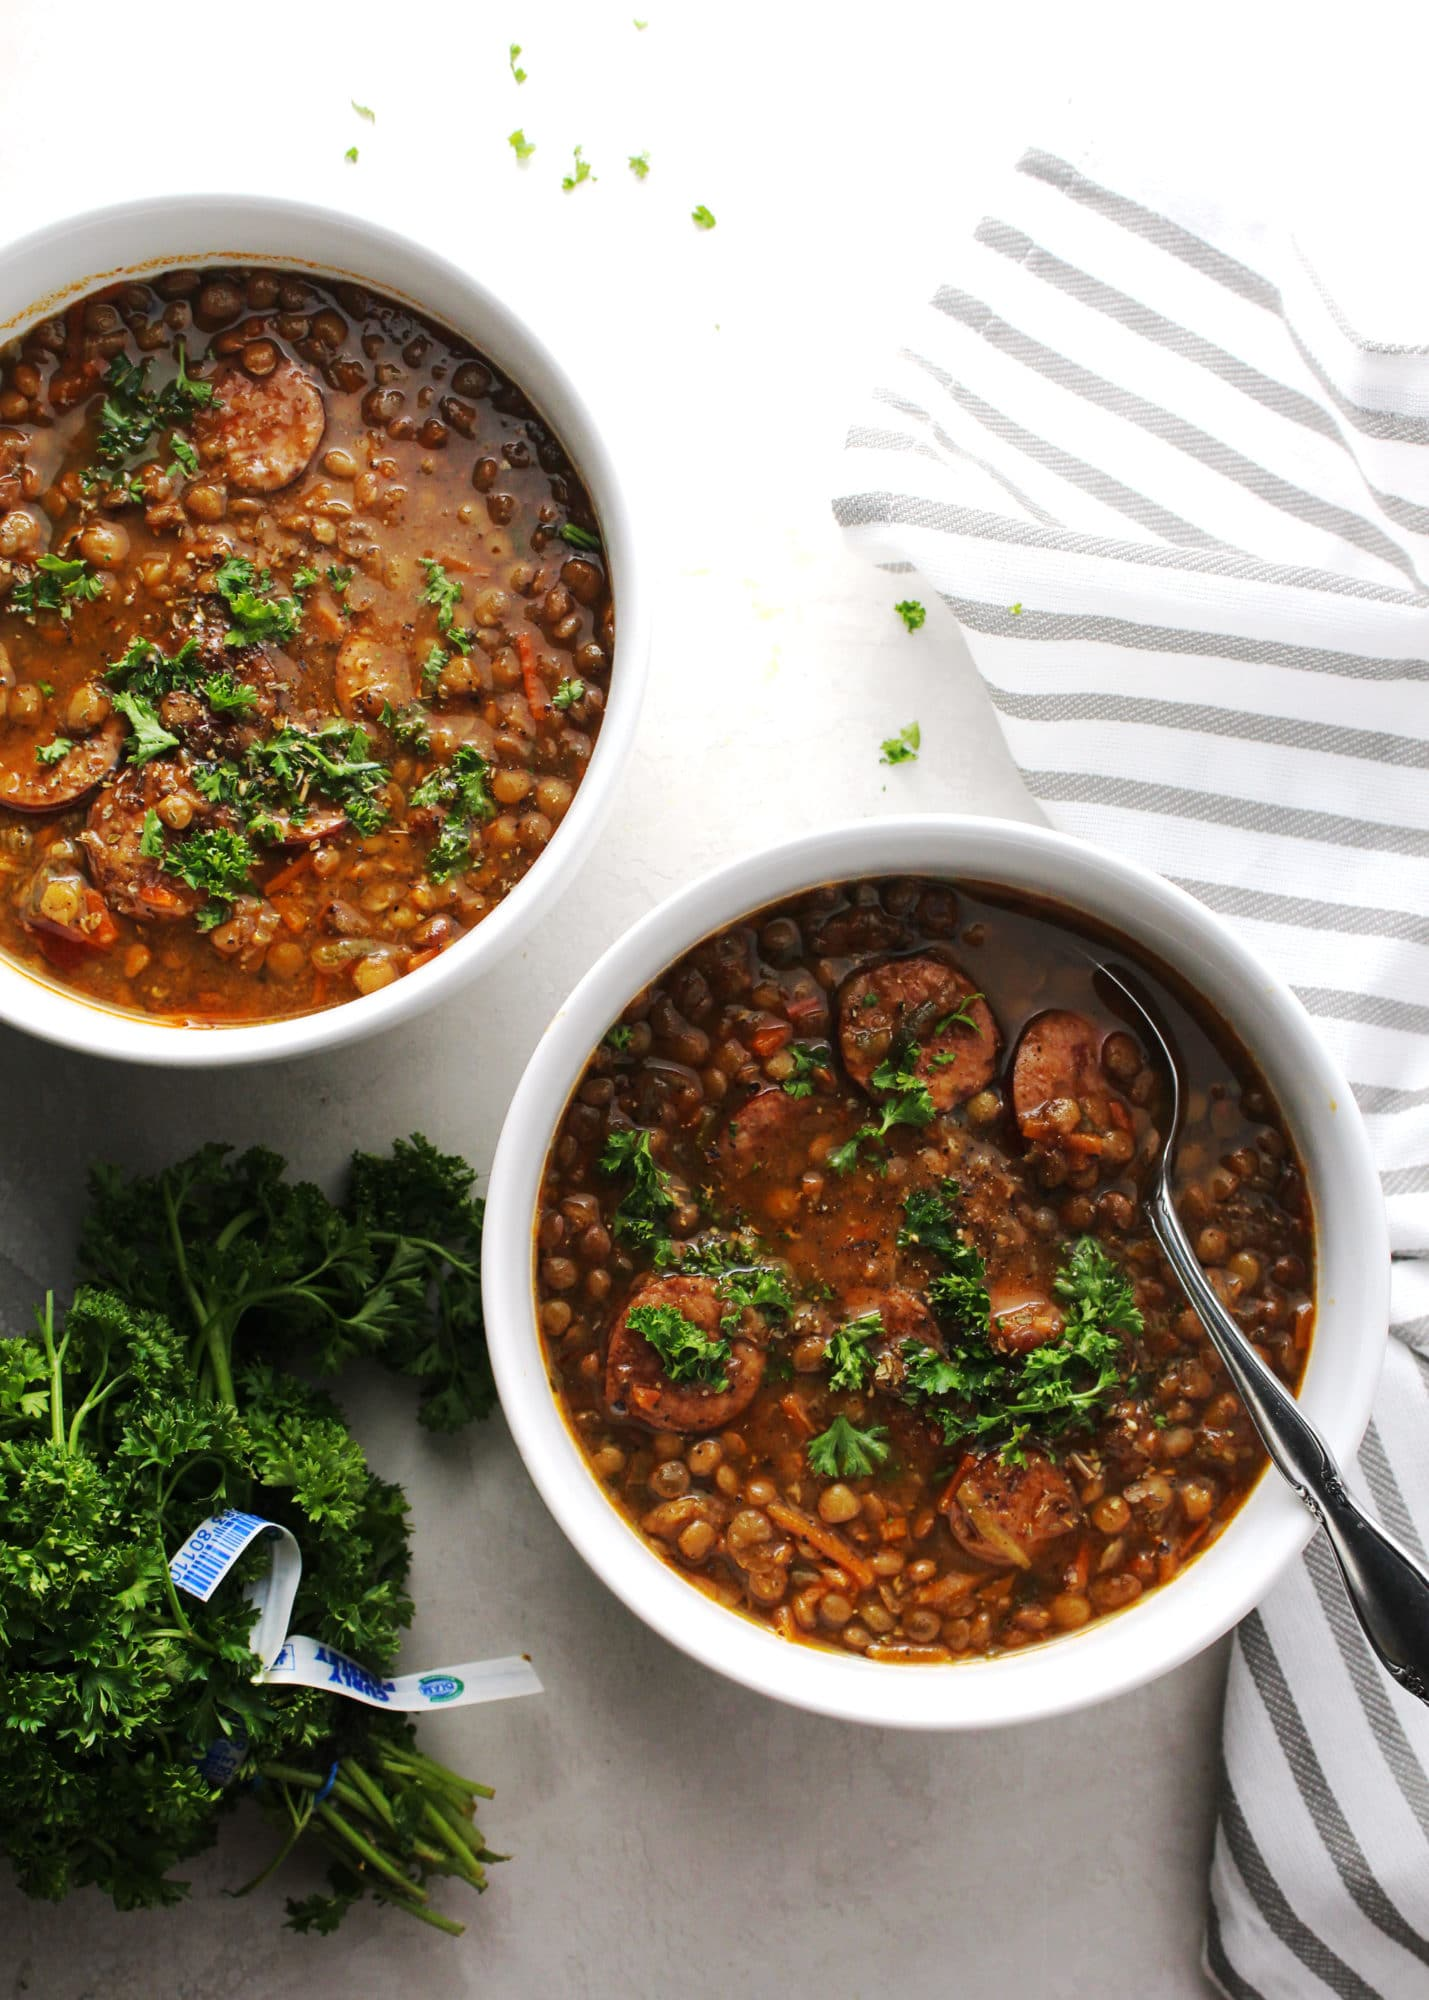 lentil stew with sausage in white bowls with silver spoon